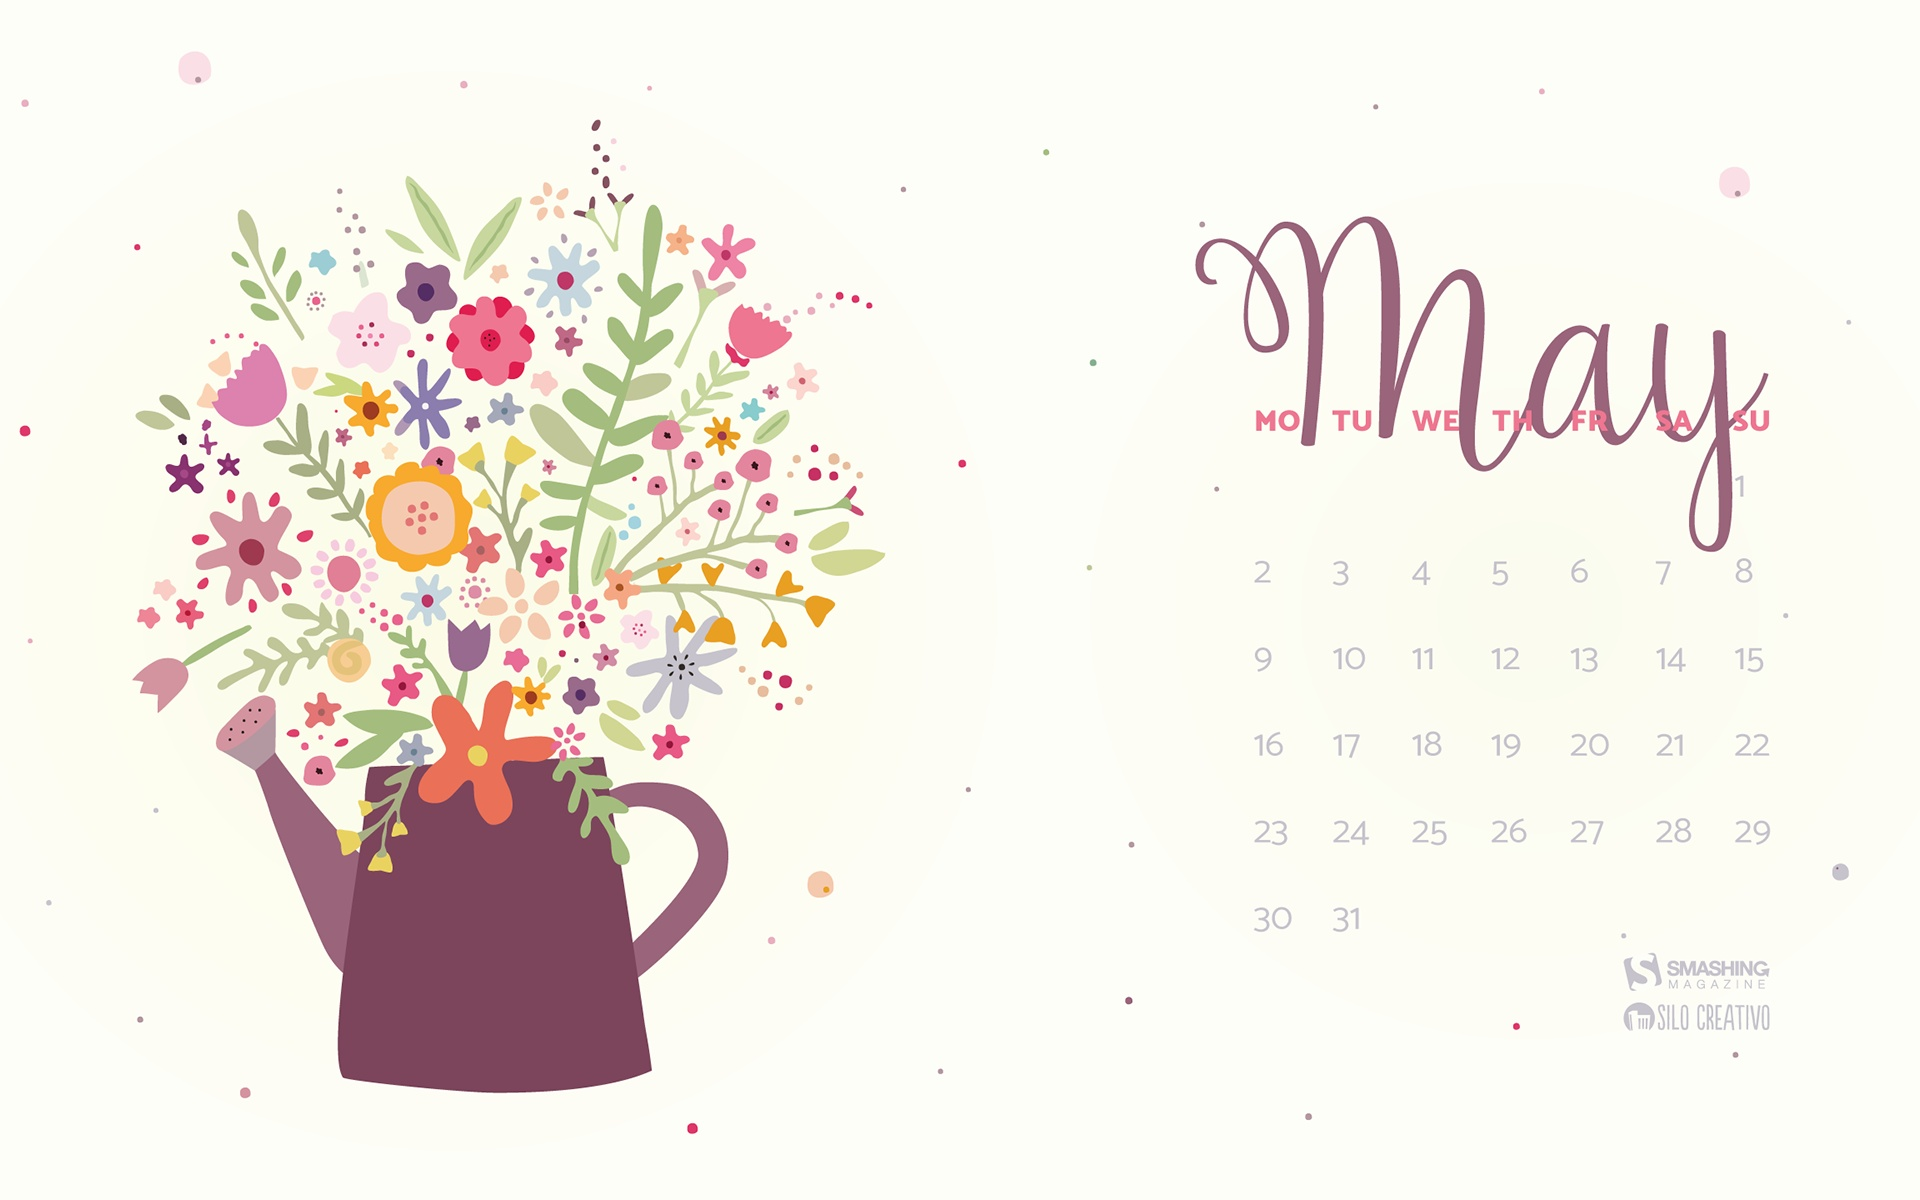 Month year calendar wallpapers 52973